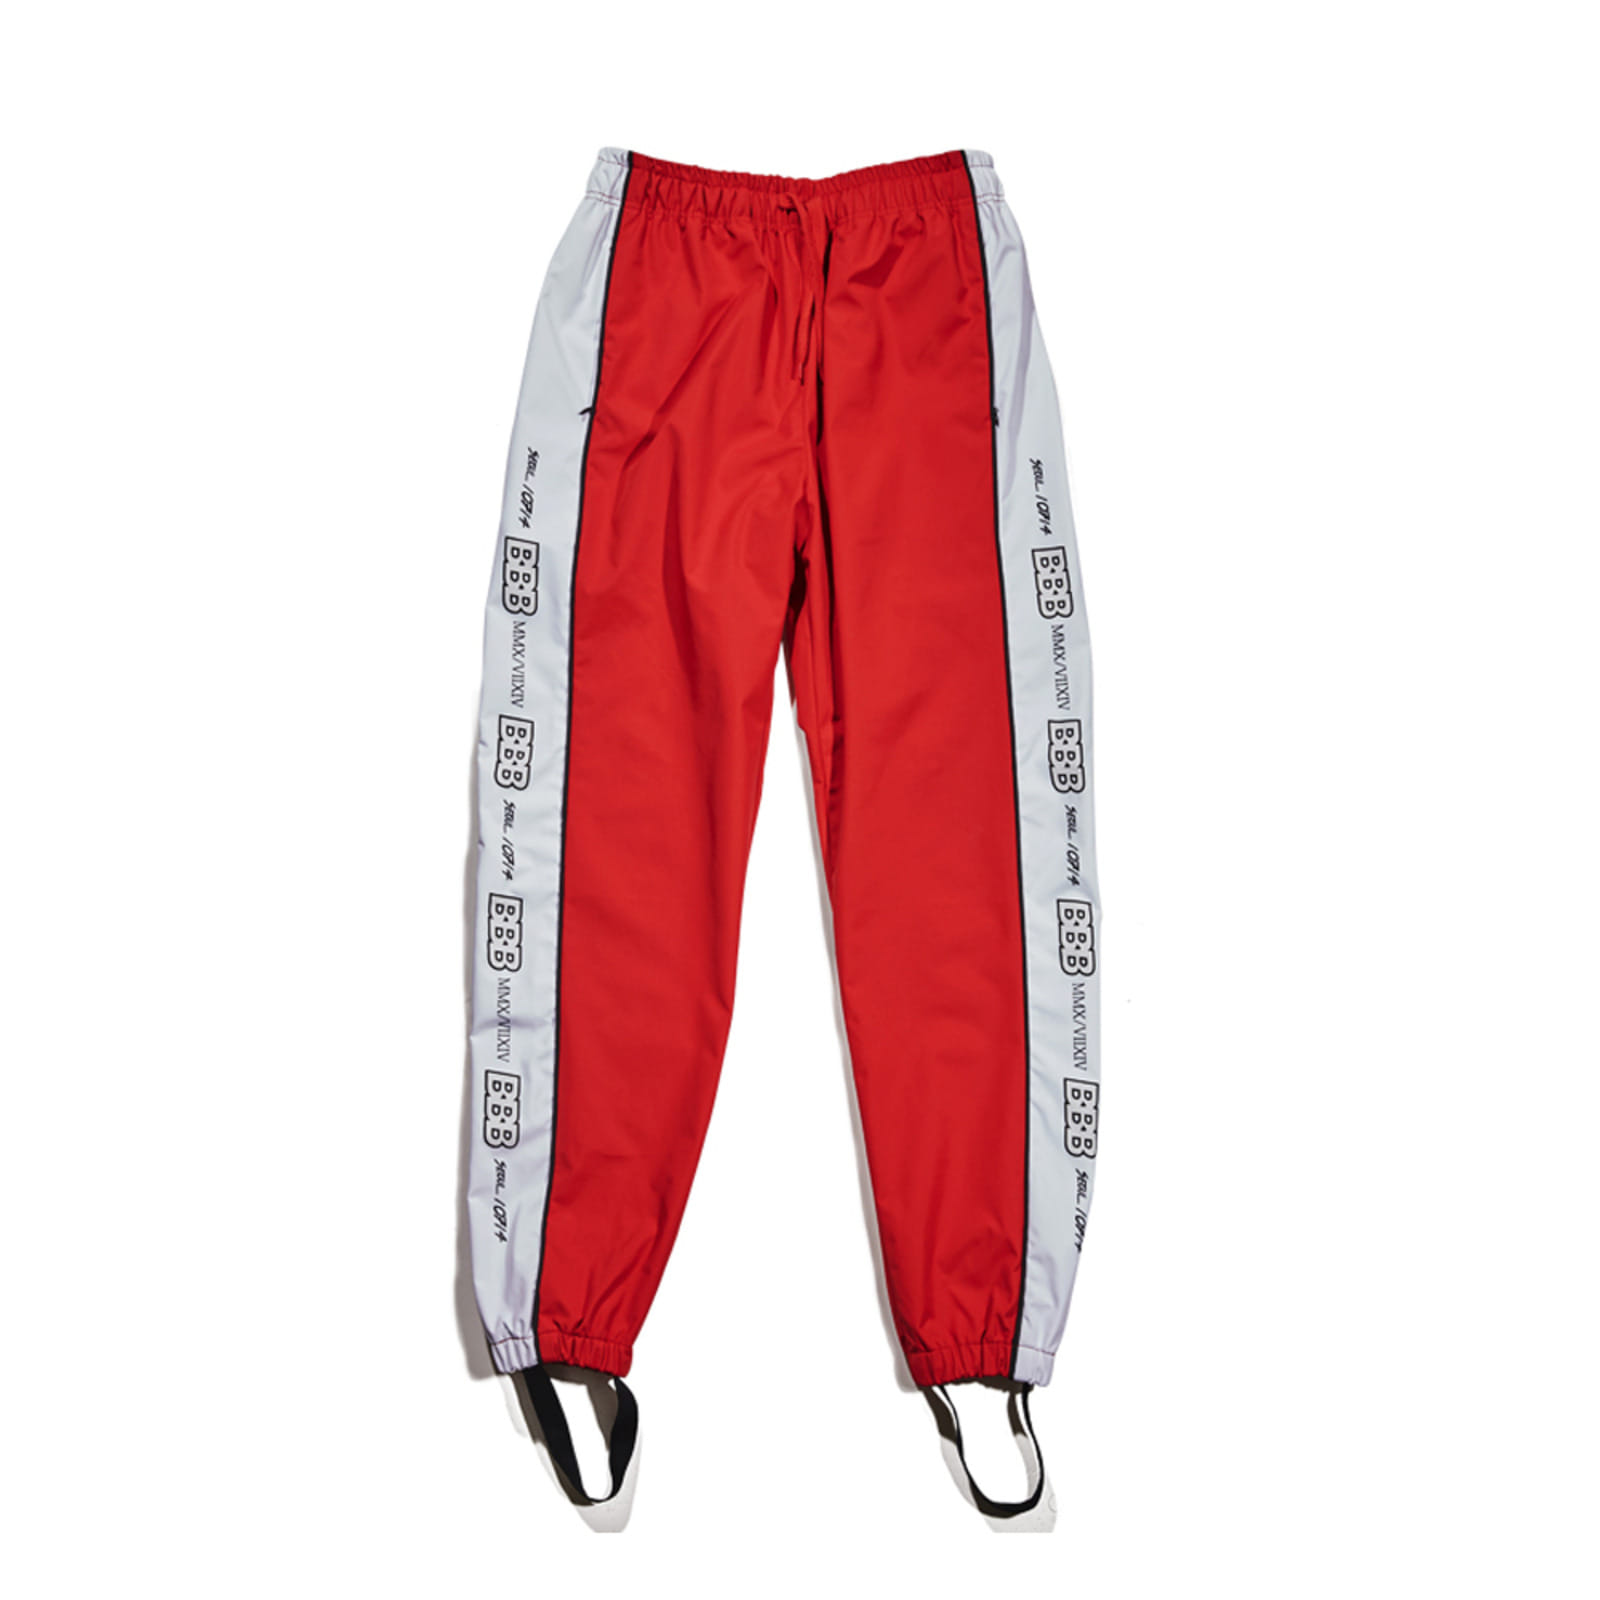 BBB Waterproof jogger pants Red